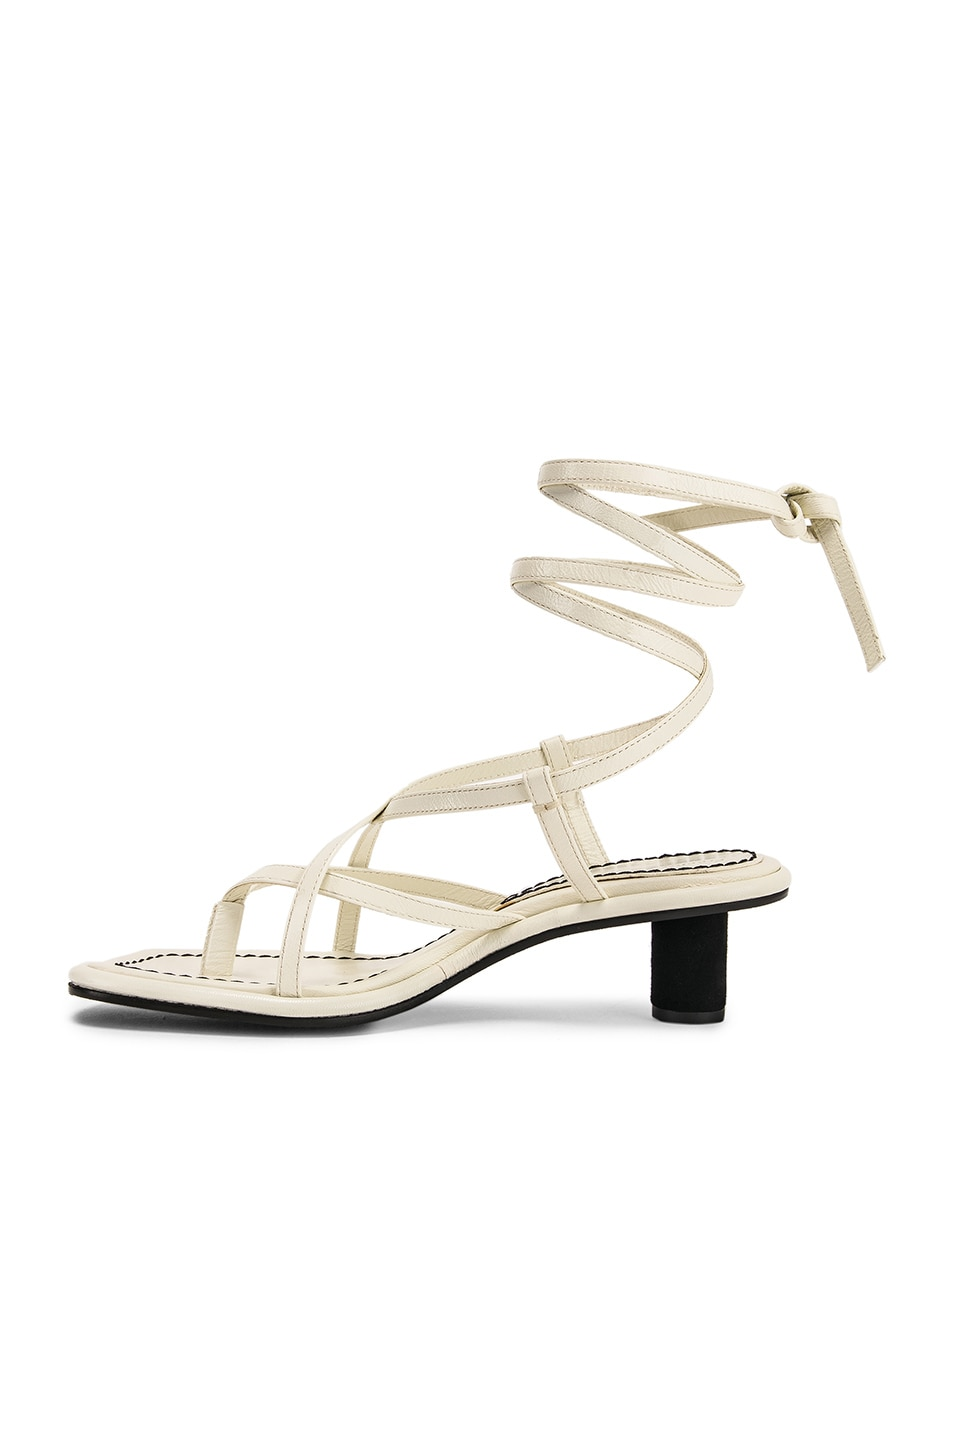 Image 5 of Proenza Schouler Gladiator Sandals in Ecru